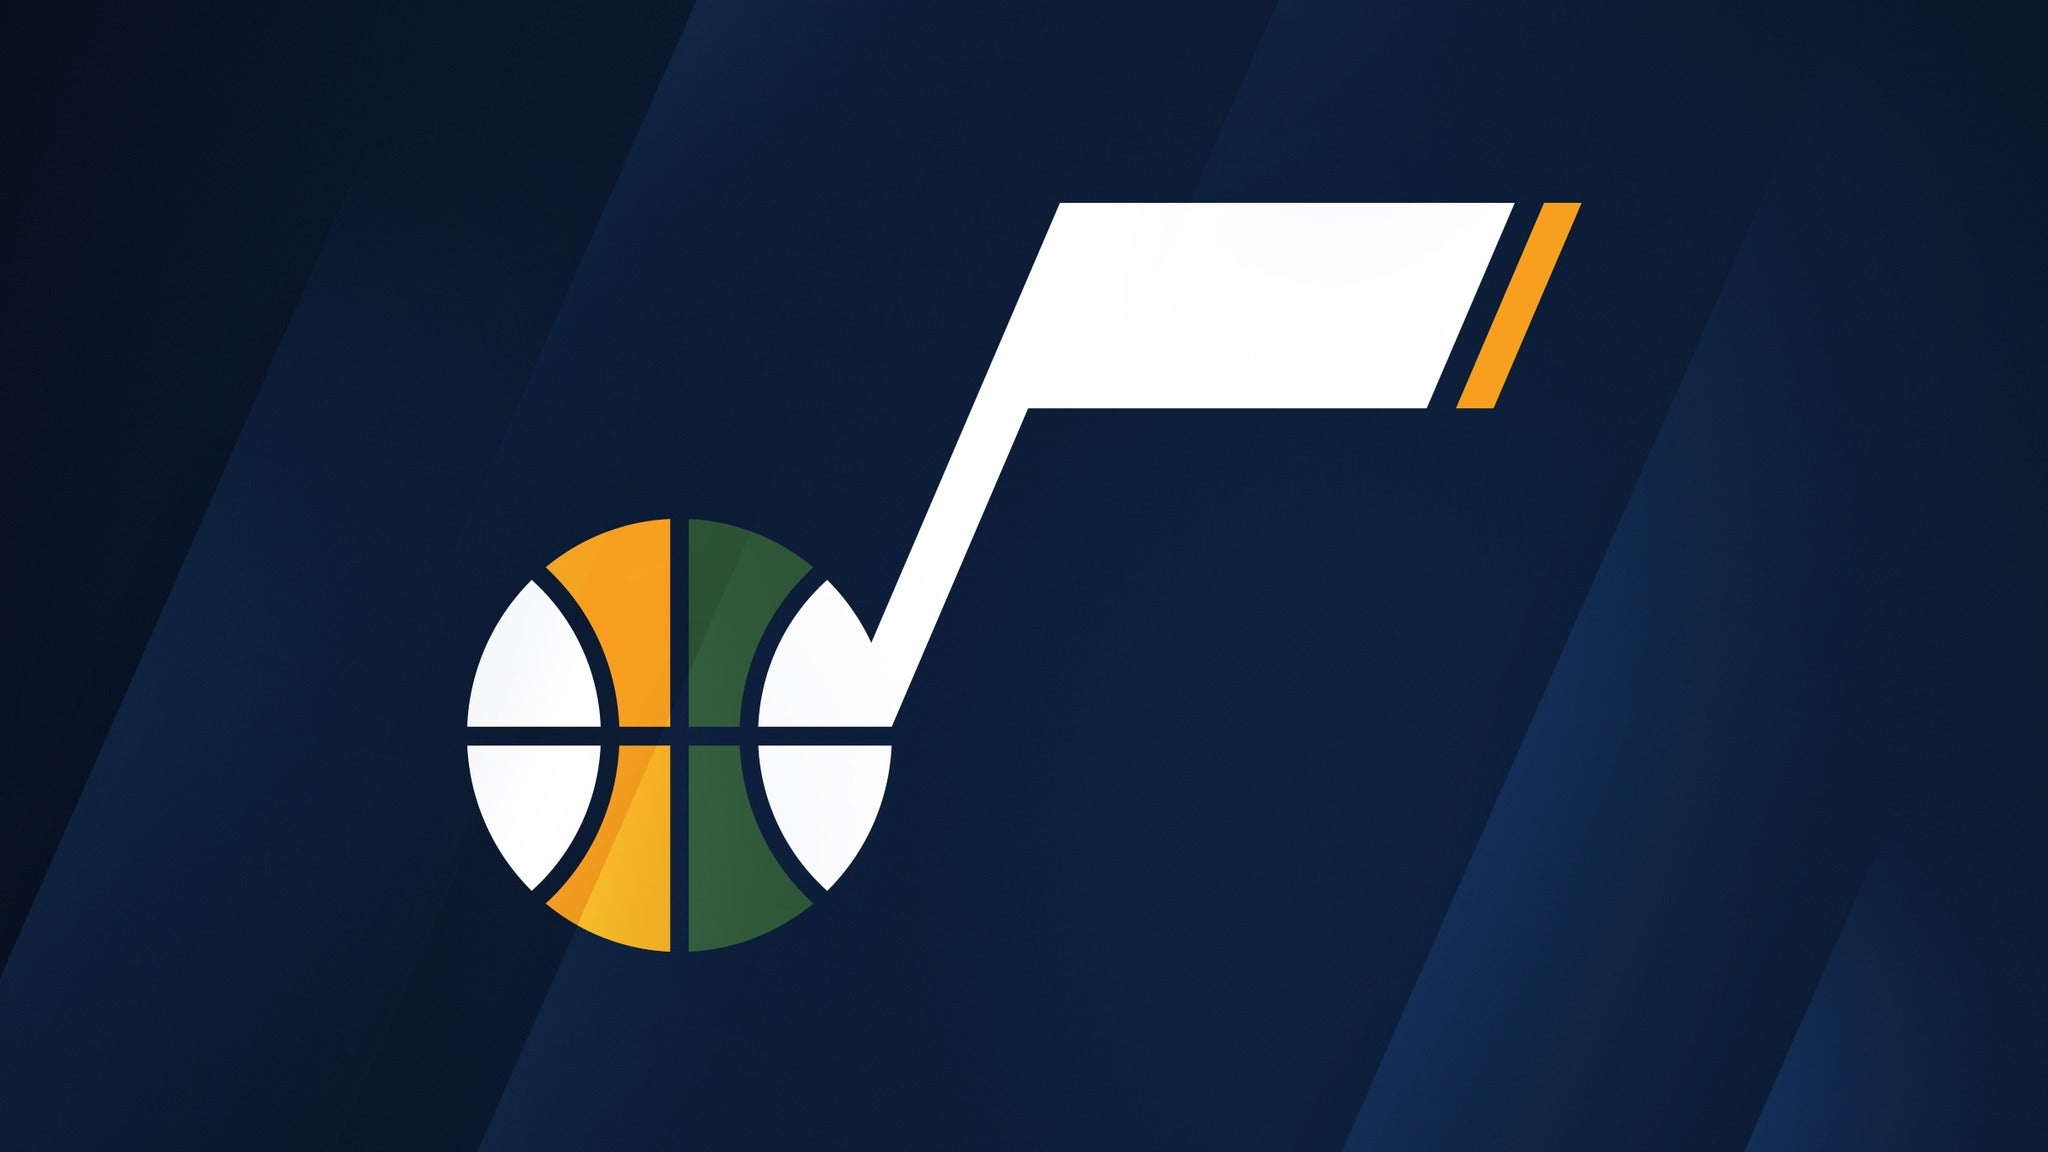 Utah Jazz vs. Milwaukee Bucks at Vivint Smart Home Arena